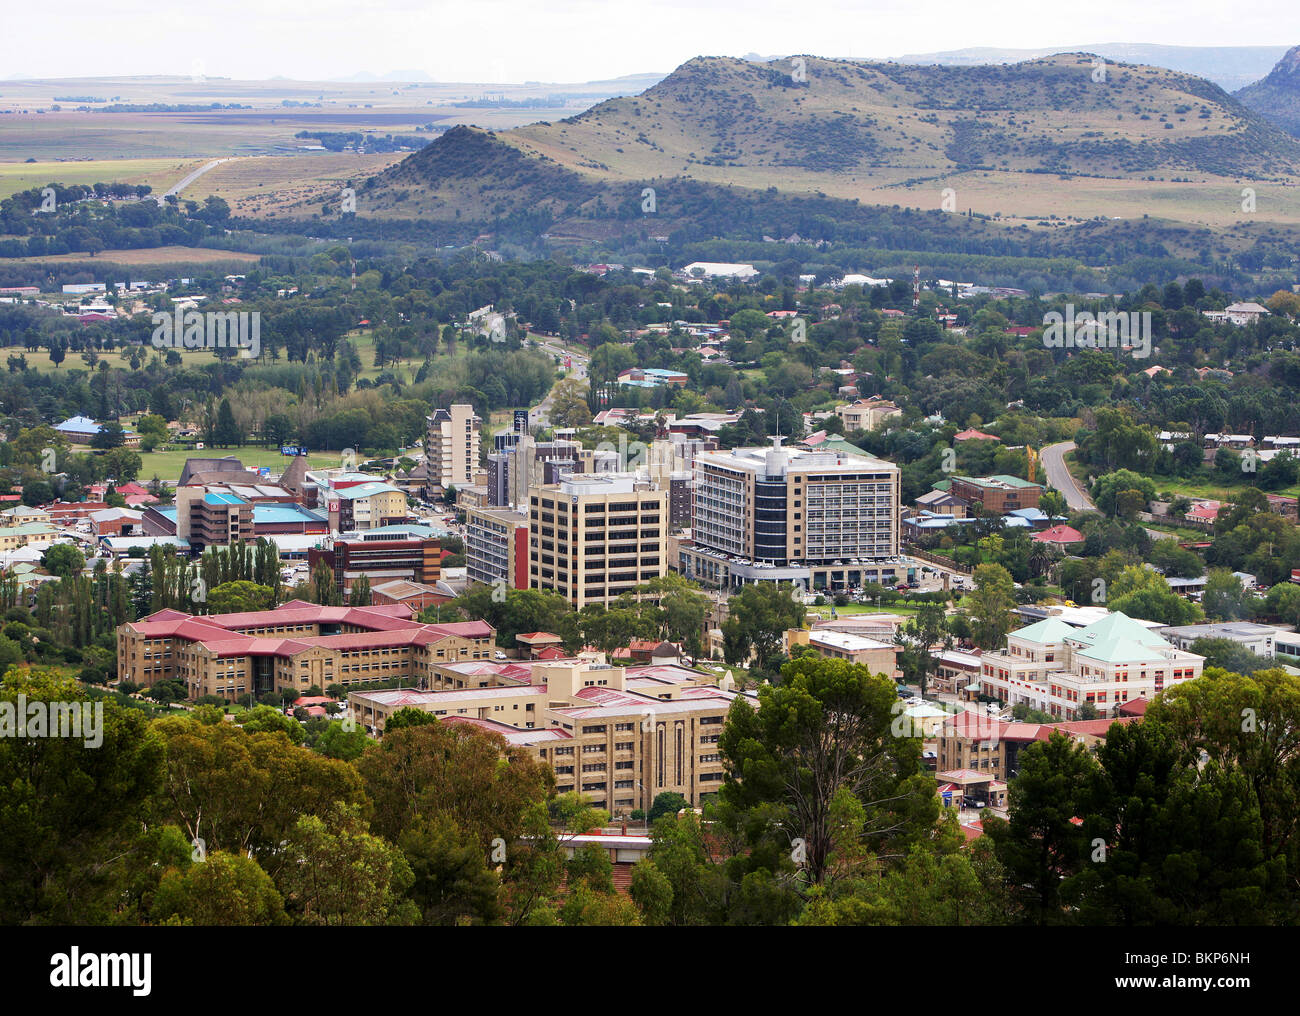 City of maseru capital of lesotho stock photo royalty free image city of maseru capital of lesotho sciox Images